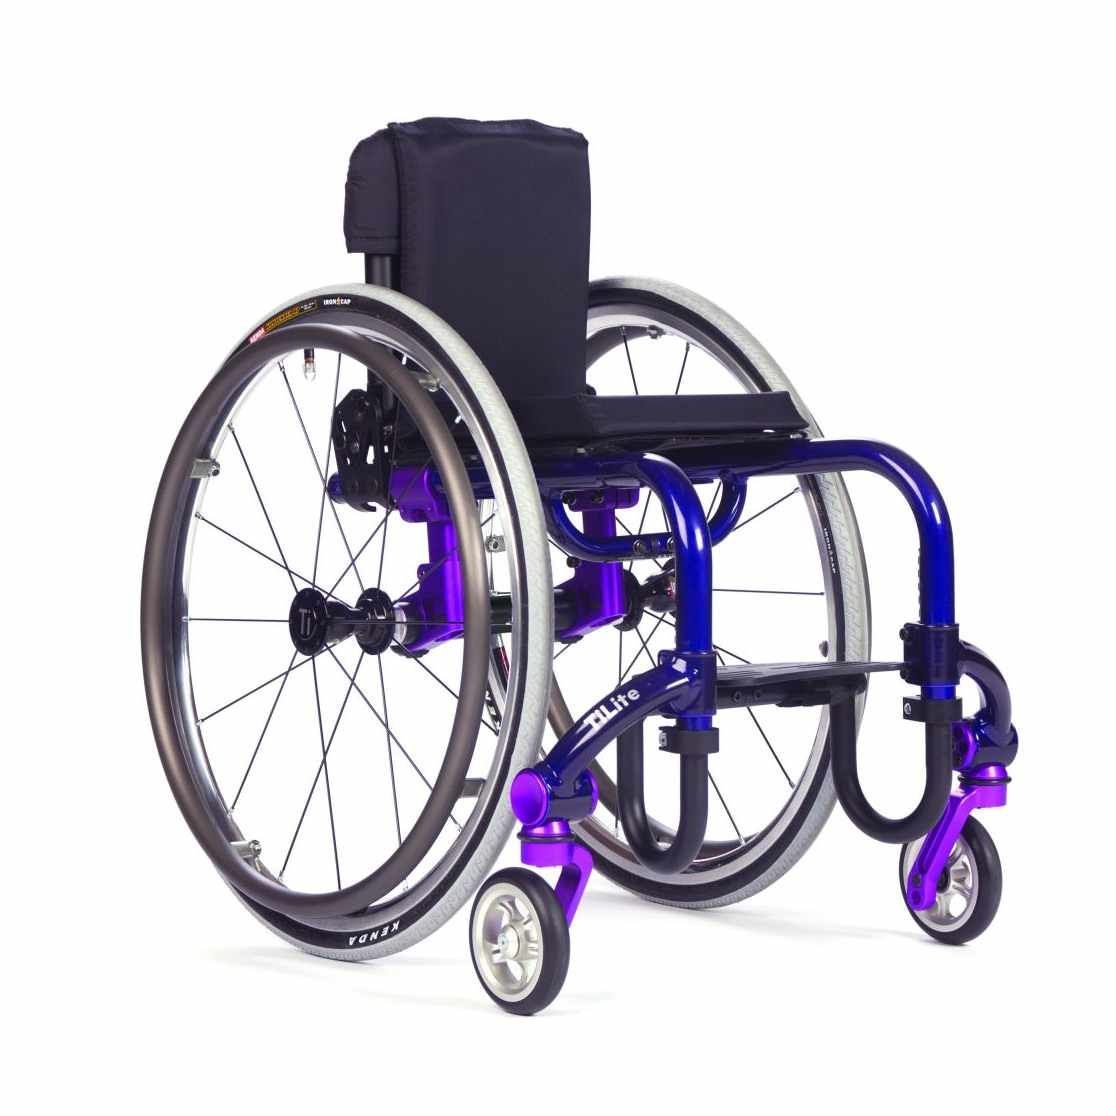 TiLite Twist pediatric ultralight wheelchair